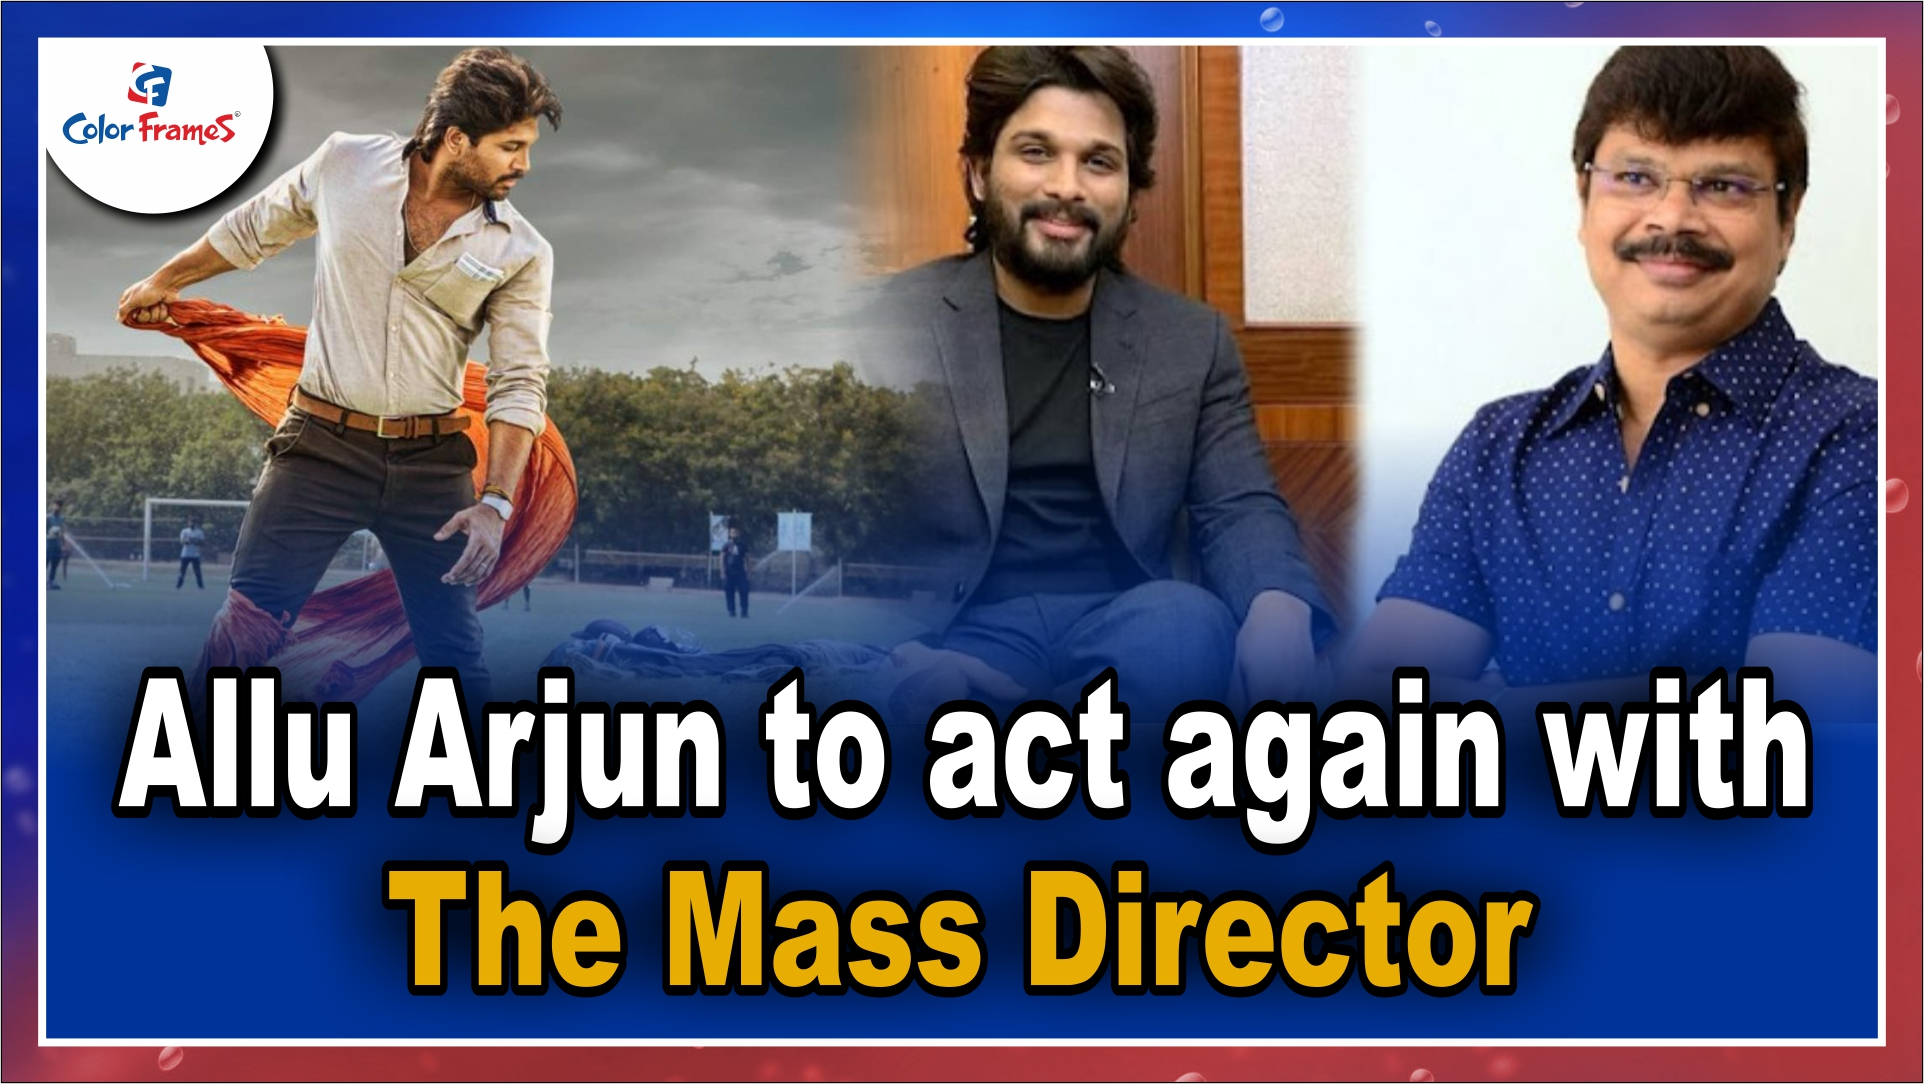 Allu Arjun to act again with the mass director.